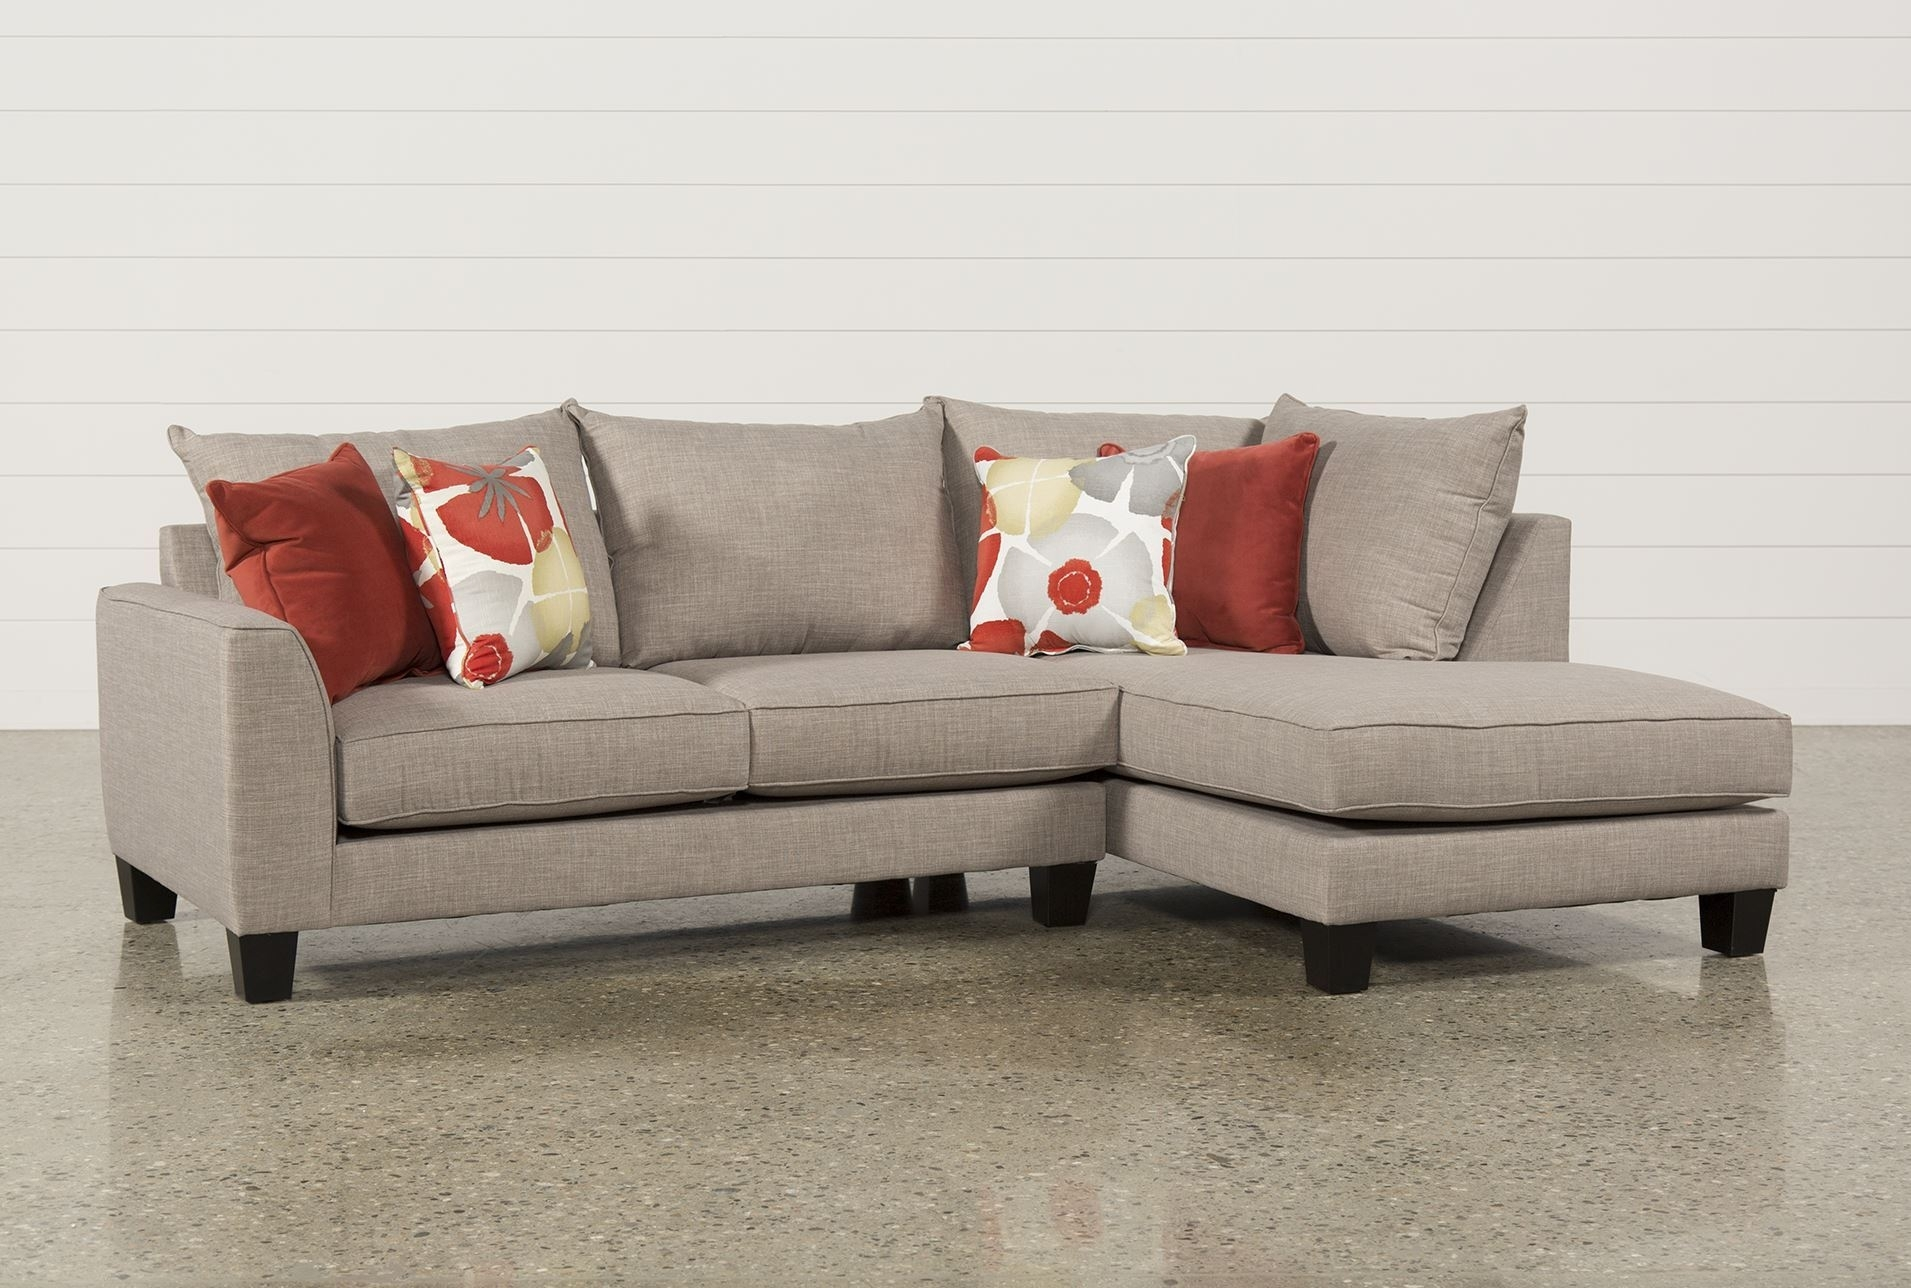 2 Piece Chaise Sectional - Mariaalcocer in Kerri 2 Piece Sectionals With Raf Chaise (Image 1 of 30)